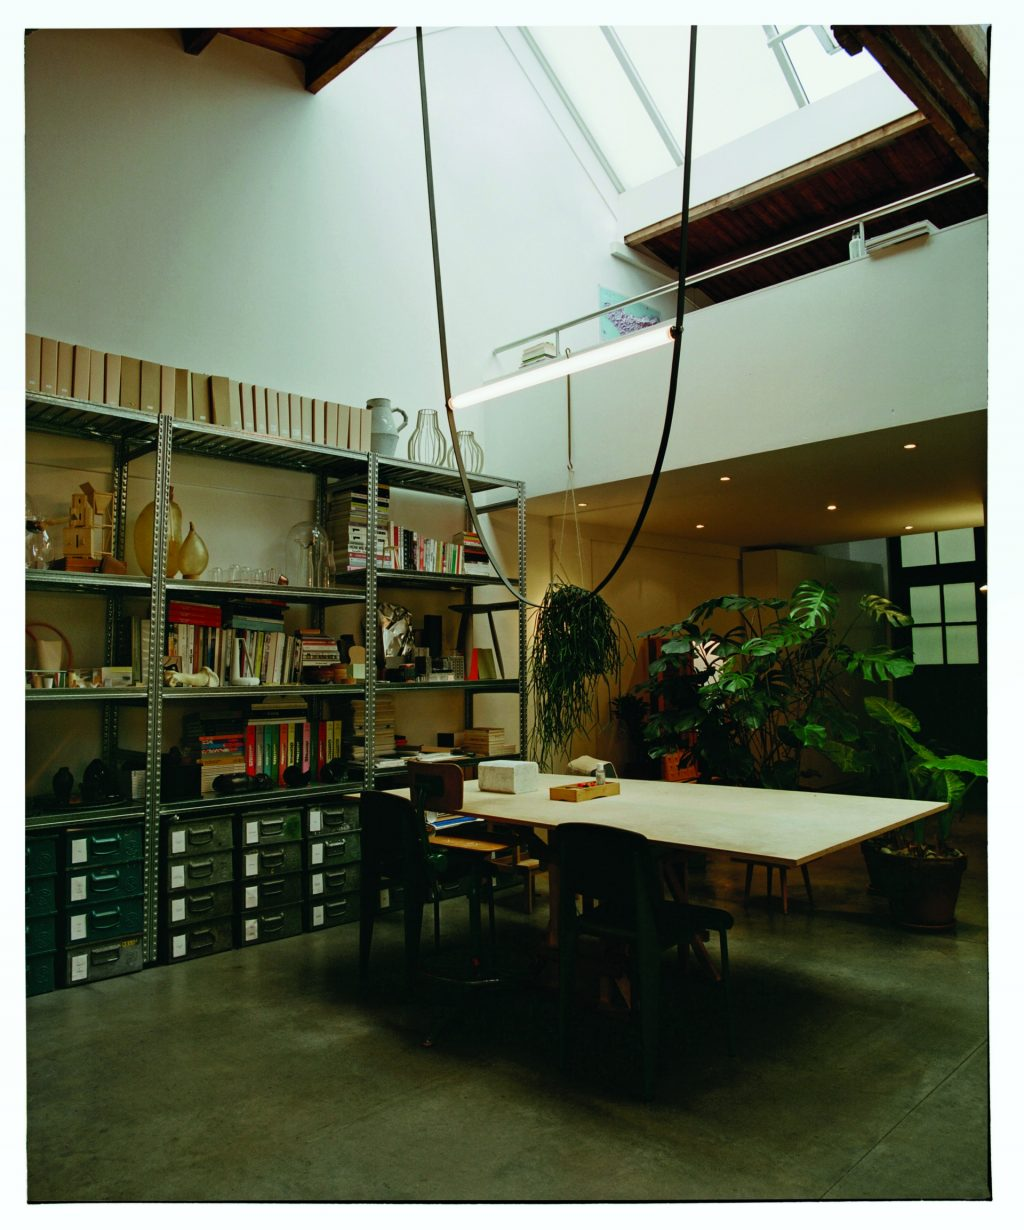 The power cable as a design element, WIRELINE - Formafantasma for FLOS